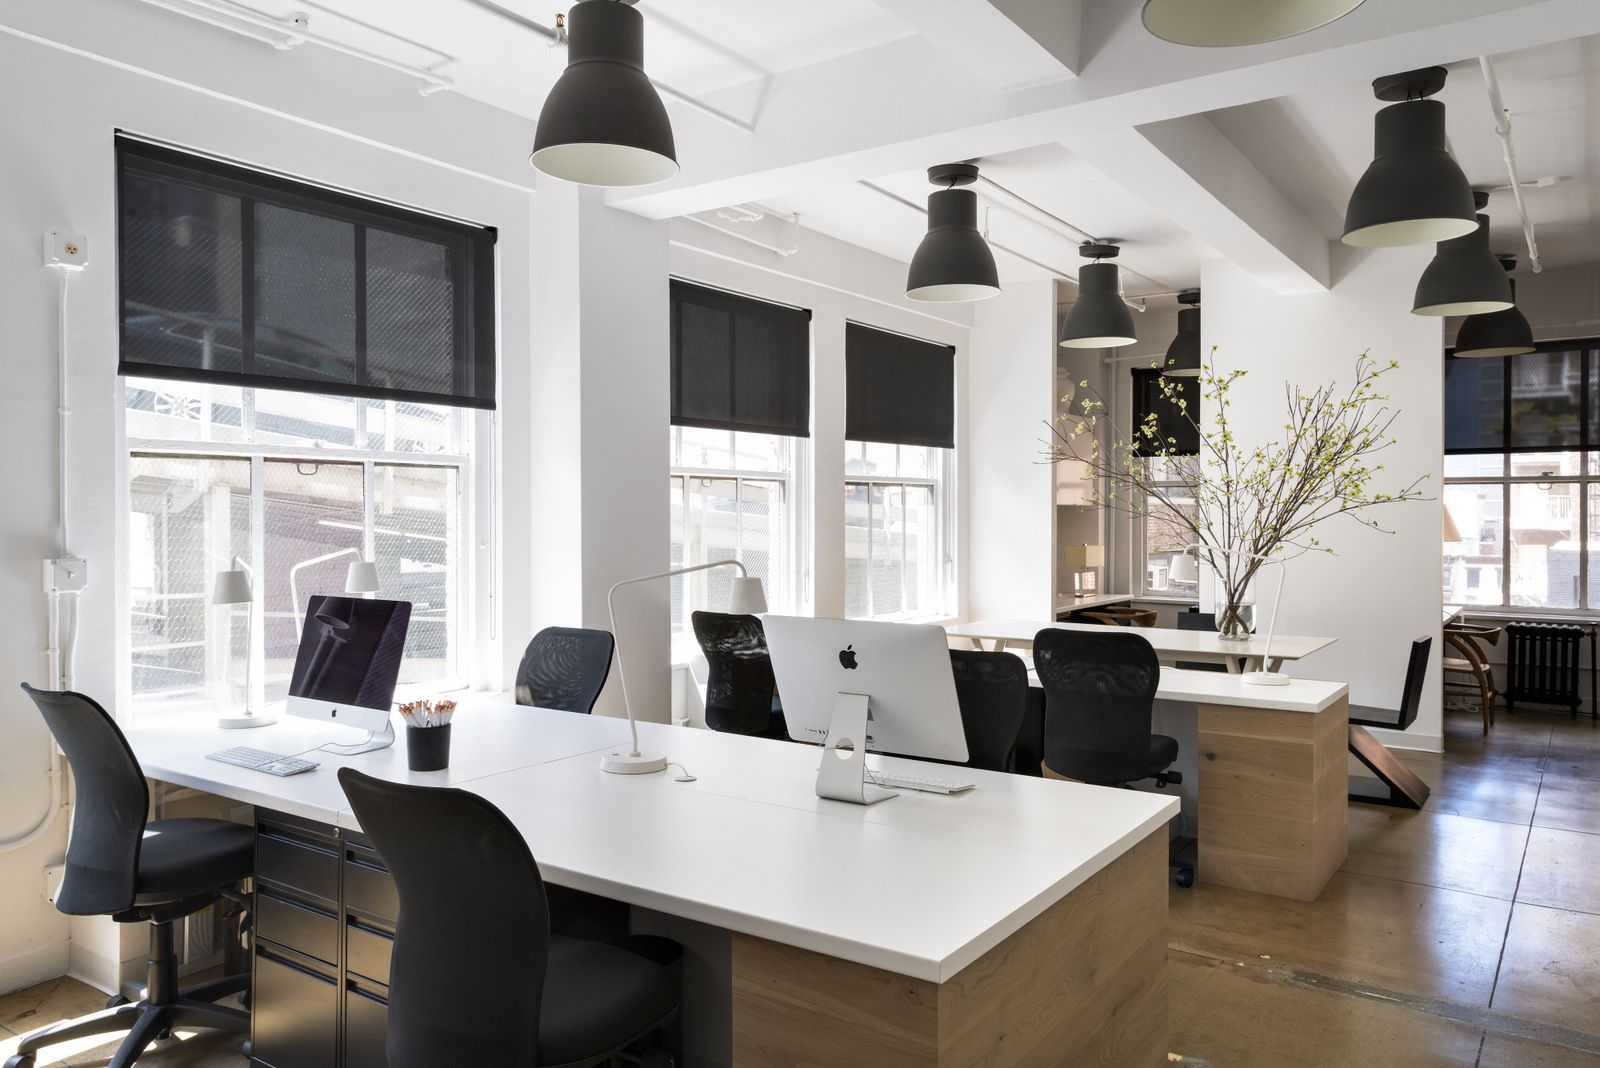 Office Tour Bhdm Design New York City Offices Modern Office Design Business Office Decor Office Layout